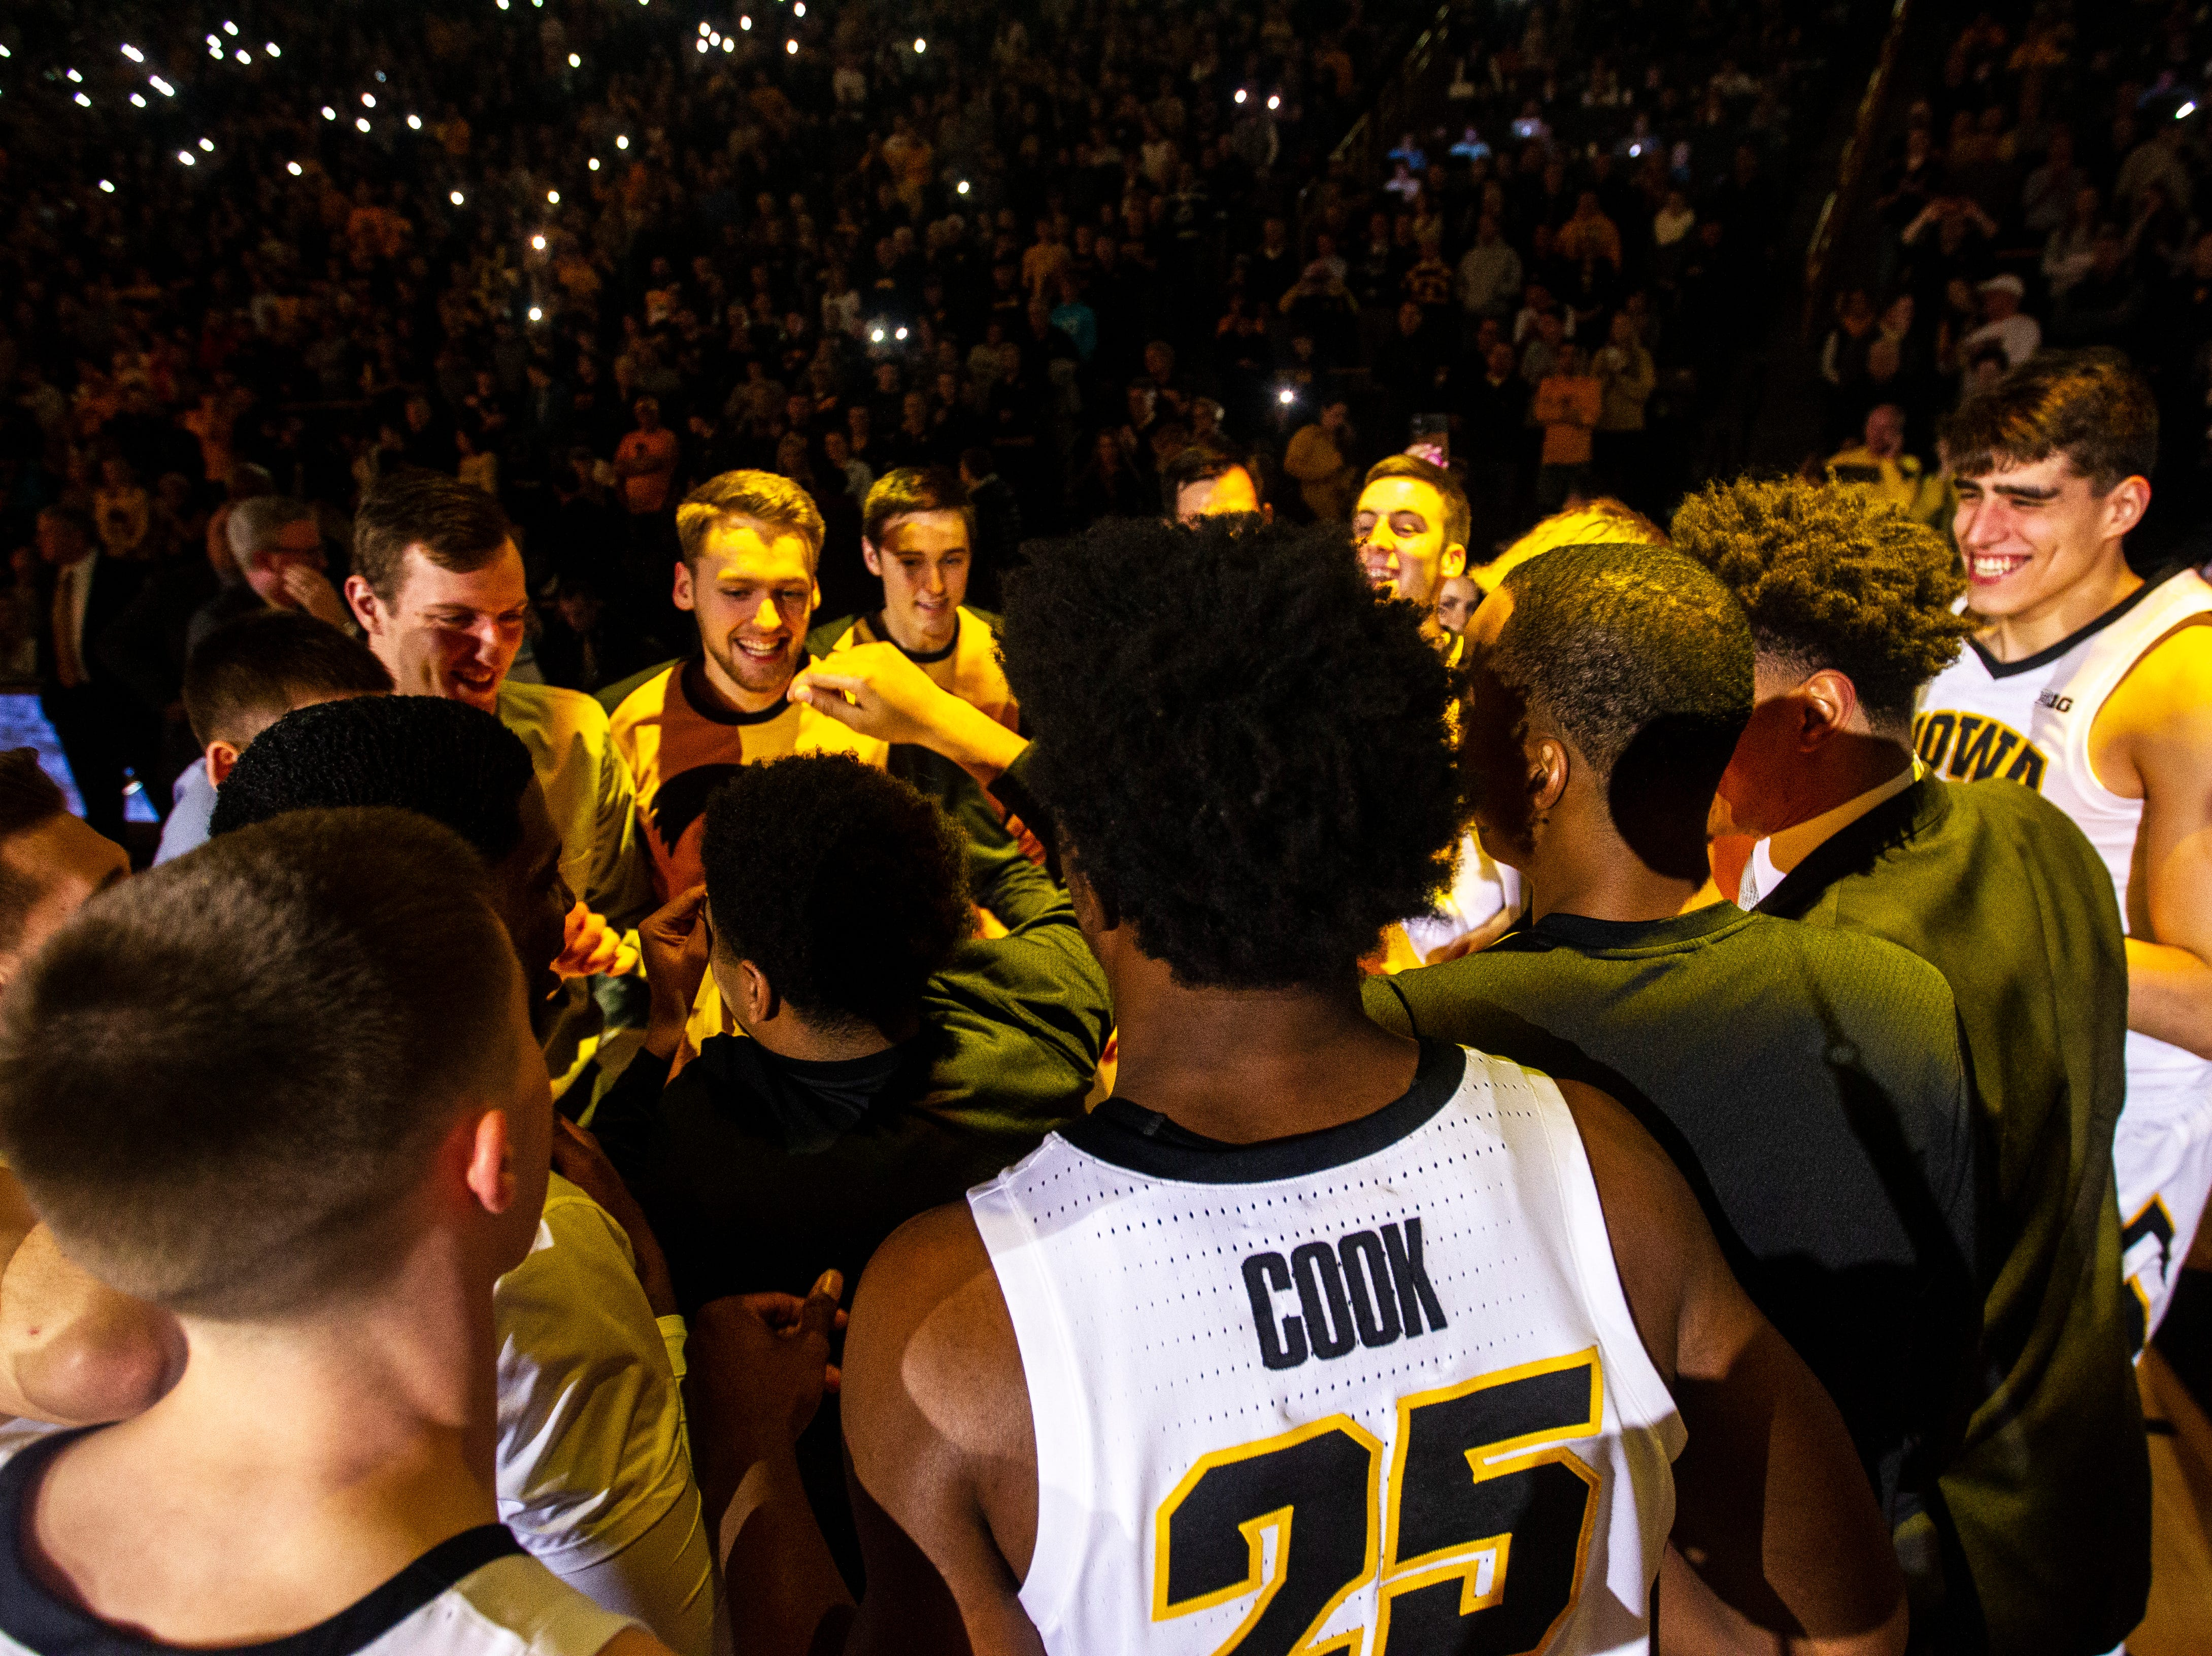 Iowa Hawkeyes players huddle up after introductions during a NCAA Big Ten Conference men's basketball game on Tuesday, Feb. 19, 2019 at Carver-Hawkeye Arena in Iowa City, Iowa.